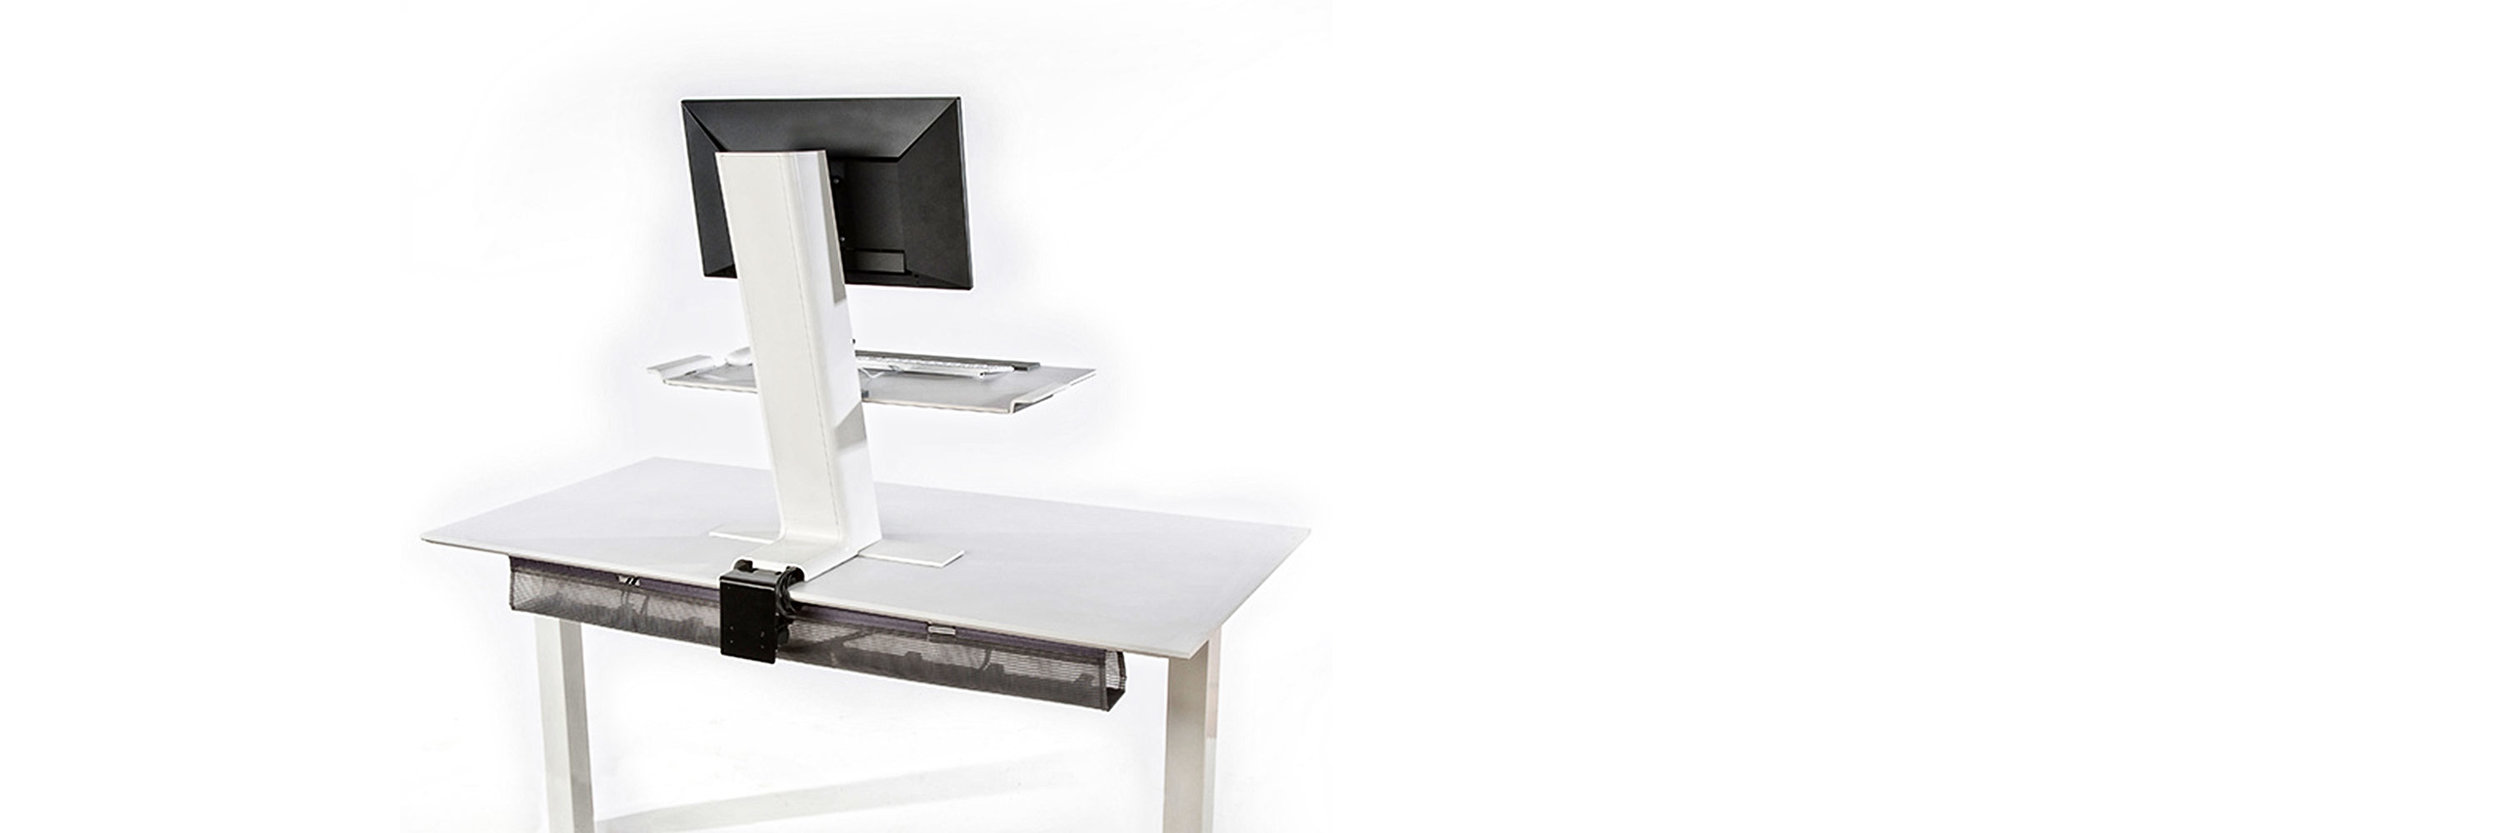 Humanscale - We are an authorised Humanscale reseller